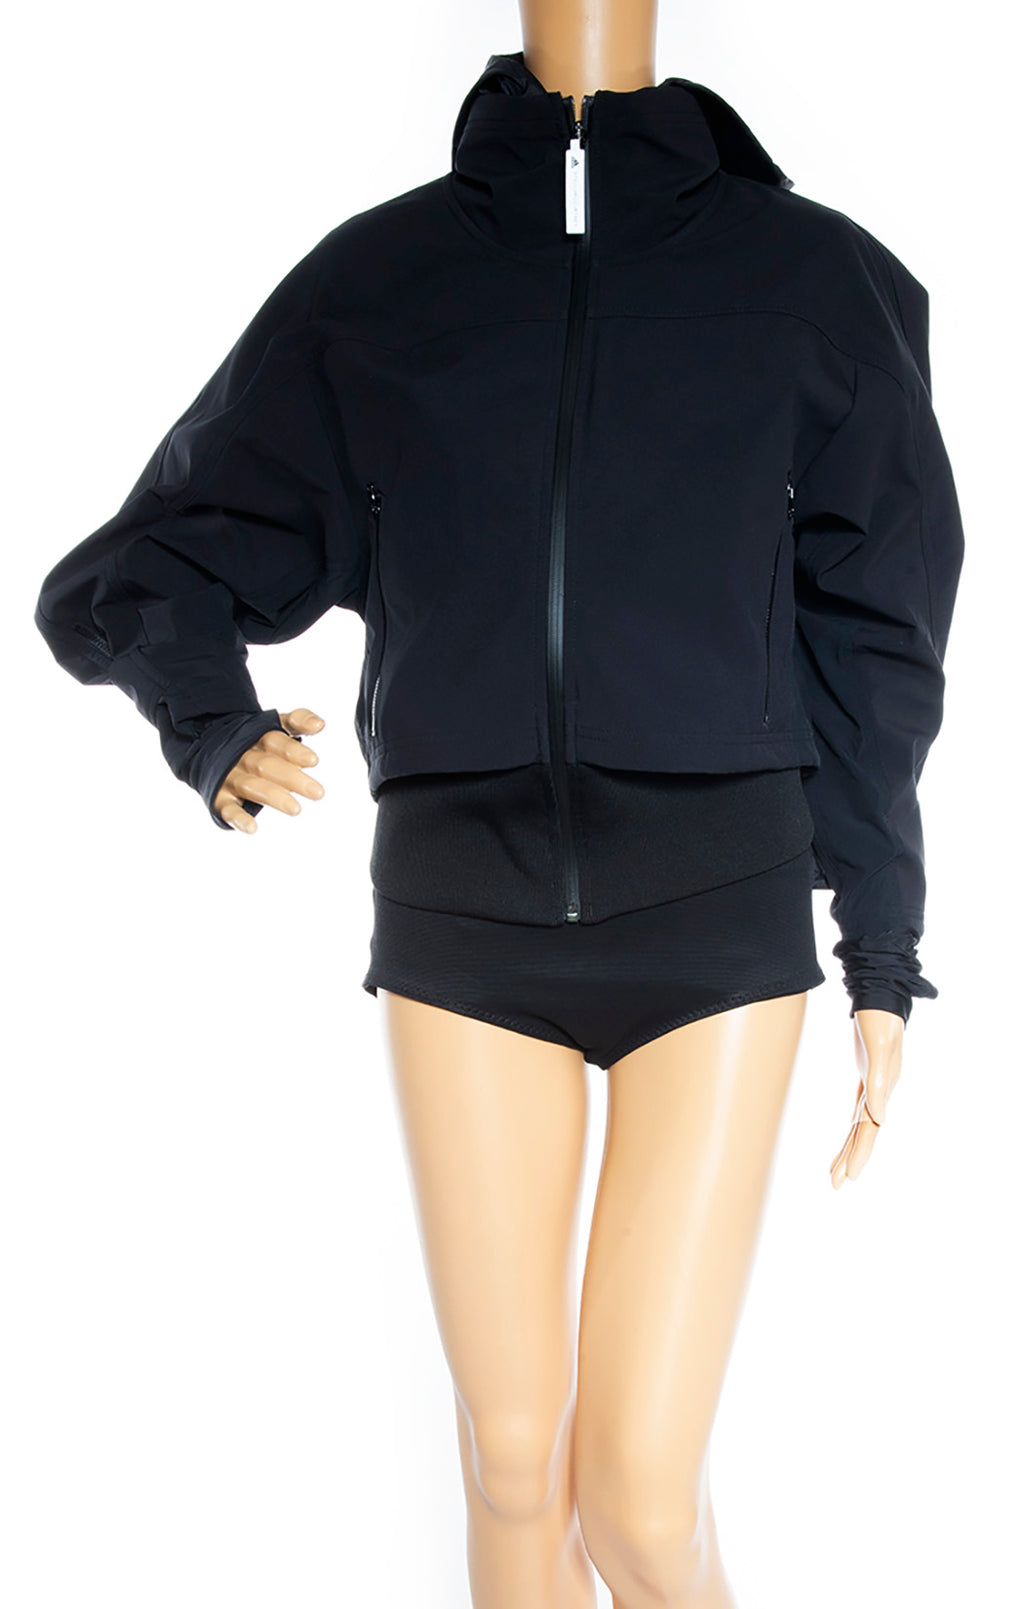 Closeup of STELLA McCARTNEY for ADIDAS Jacket Size: Small